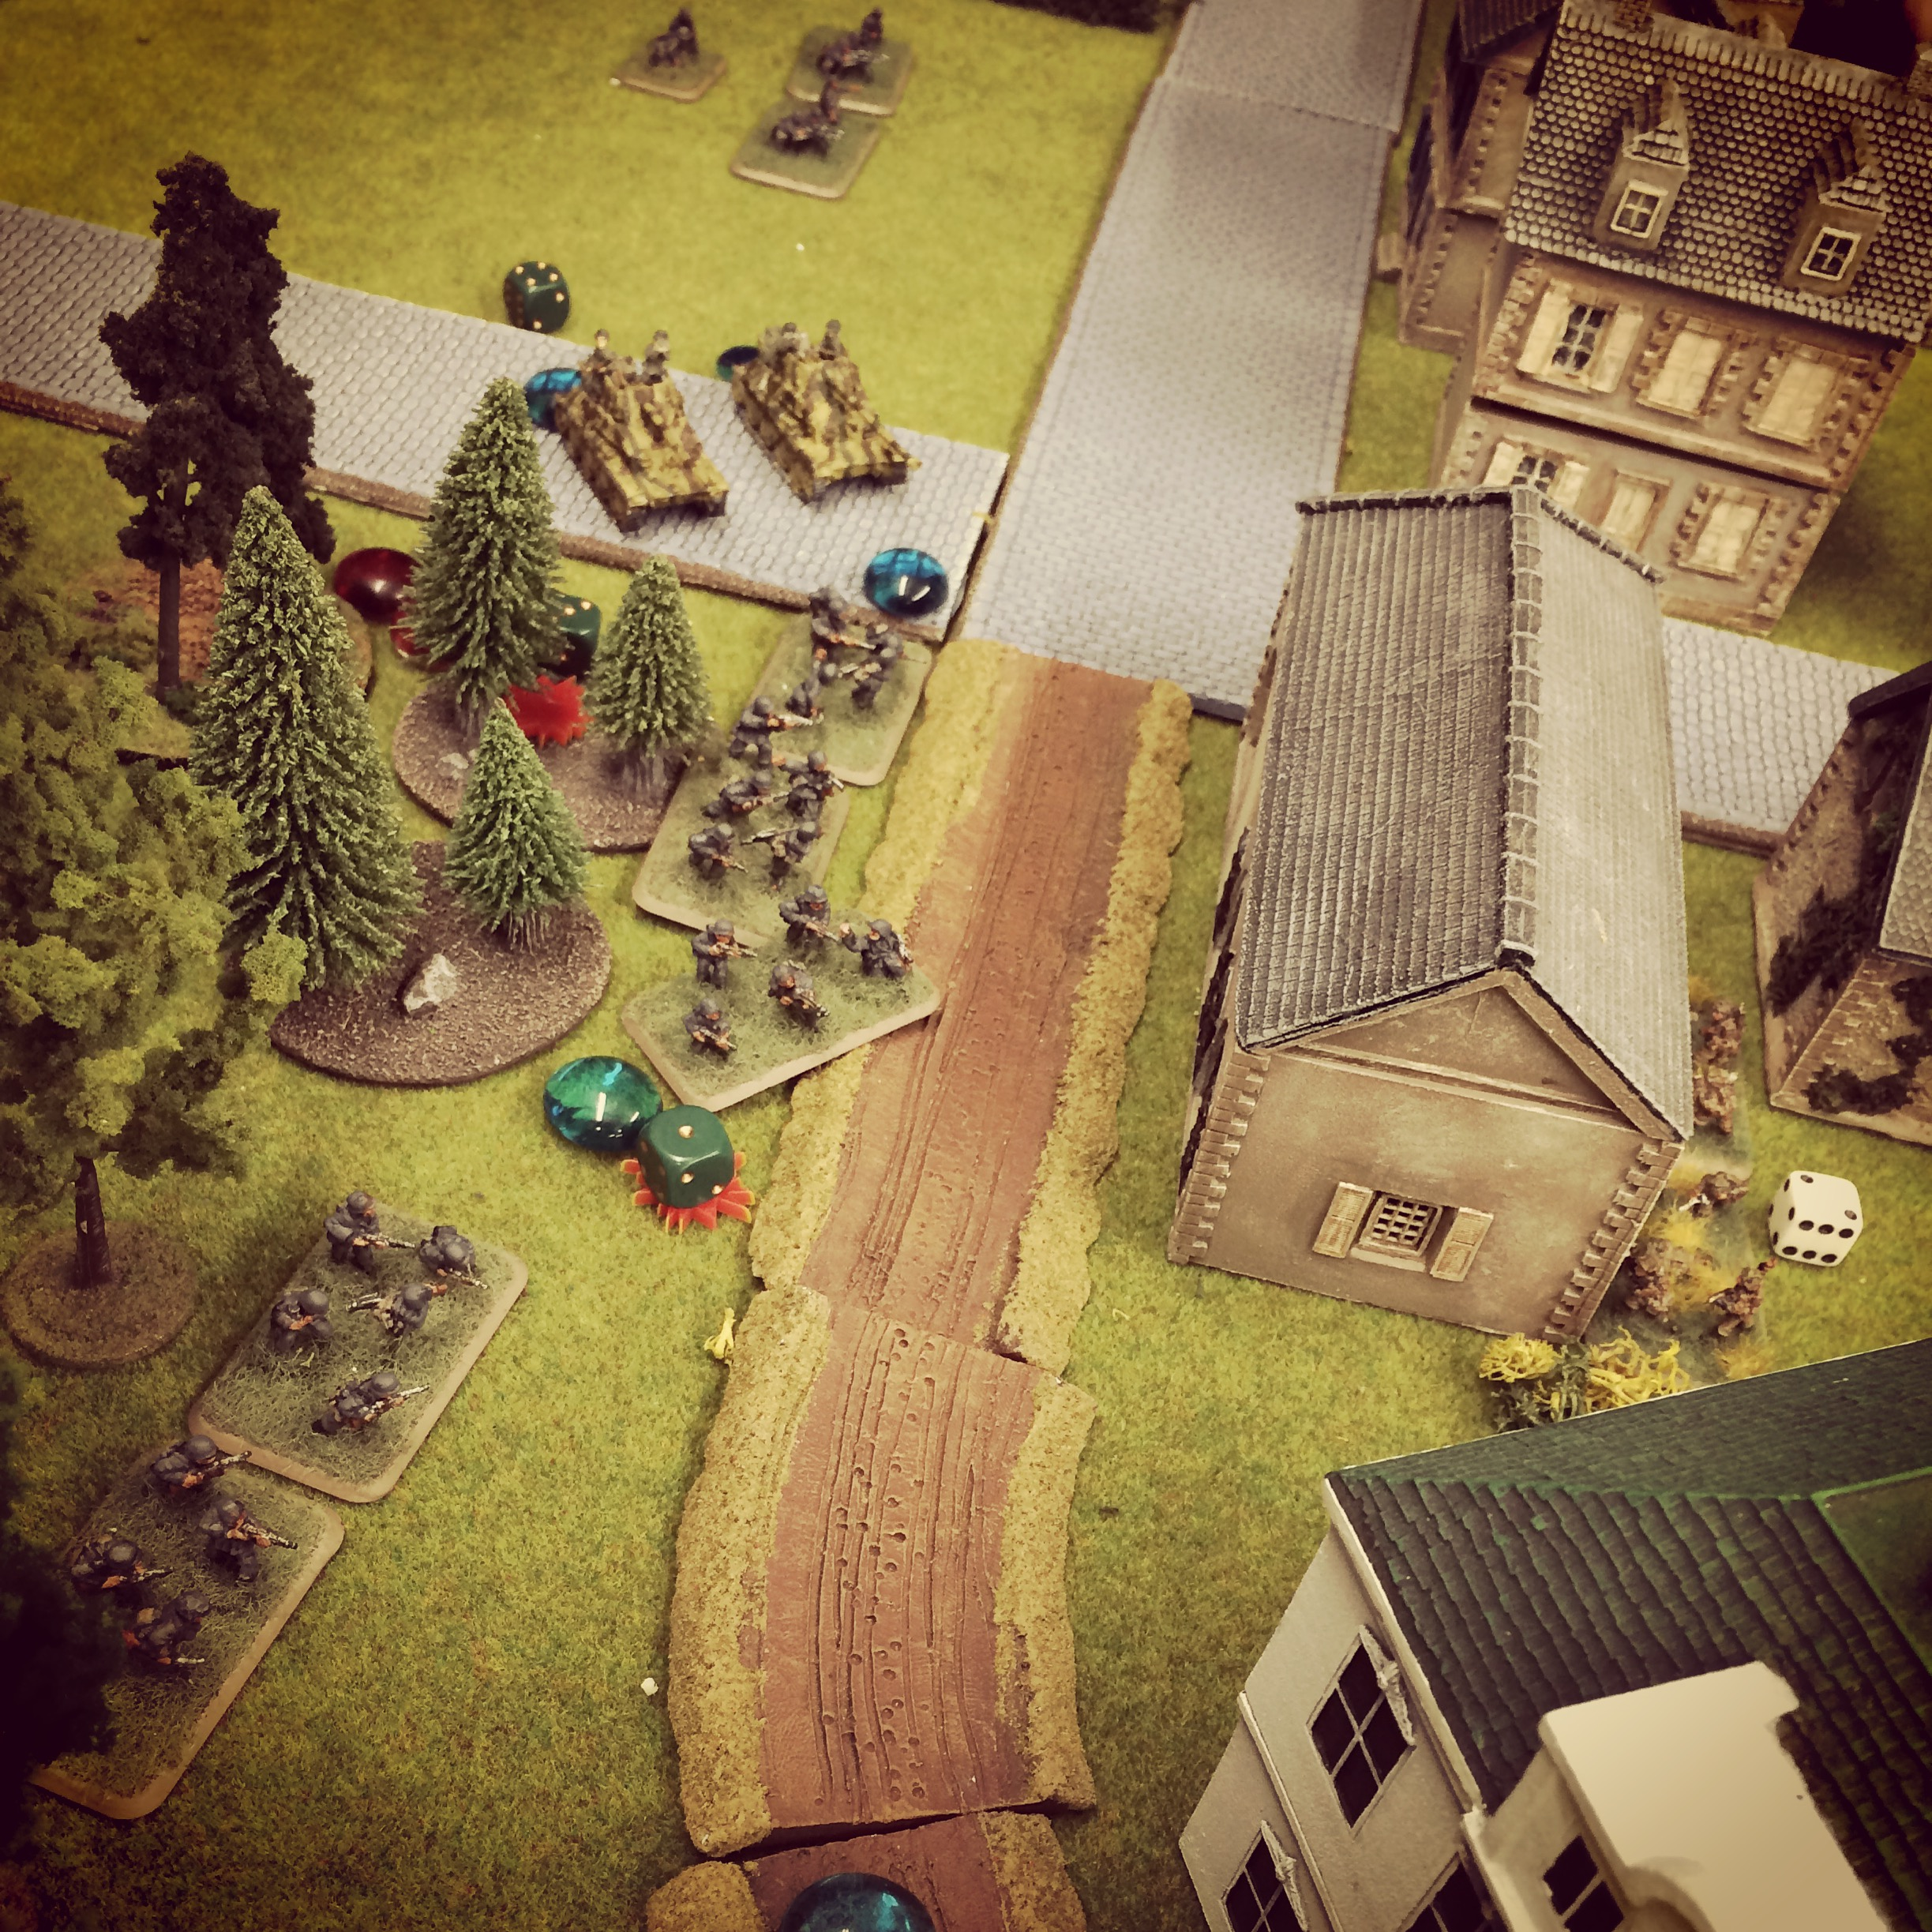 German troops advance on the town supported by mobile guns